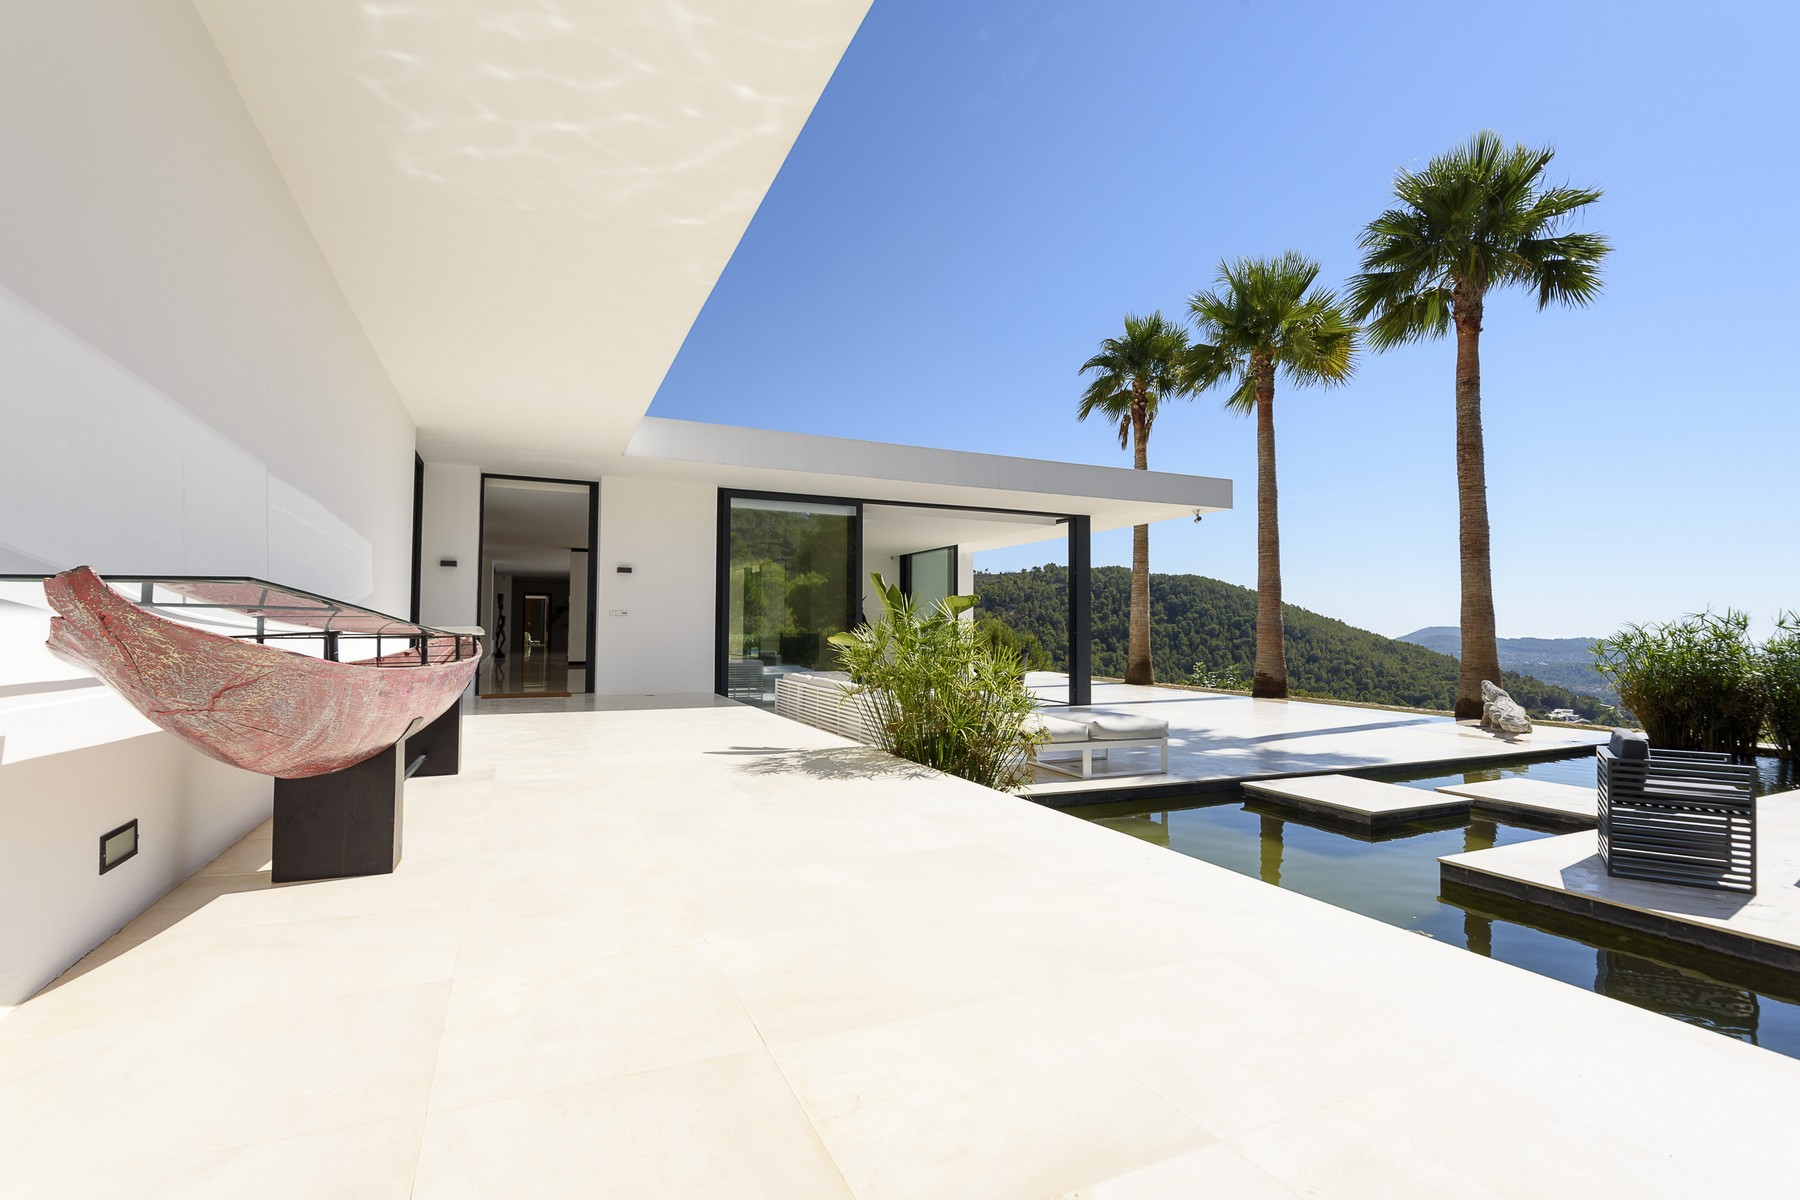 獨棟家庭住宅 為 出售 在 Contemporary Villa on 250'000 m2 in Morna Valley Santa Eulalia, 西亞特, 07850 西班牙